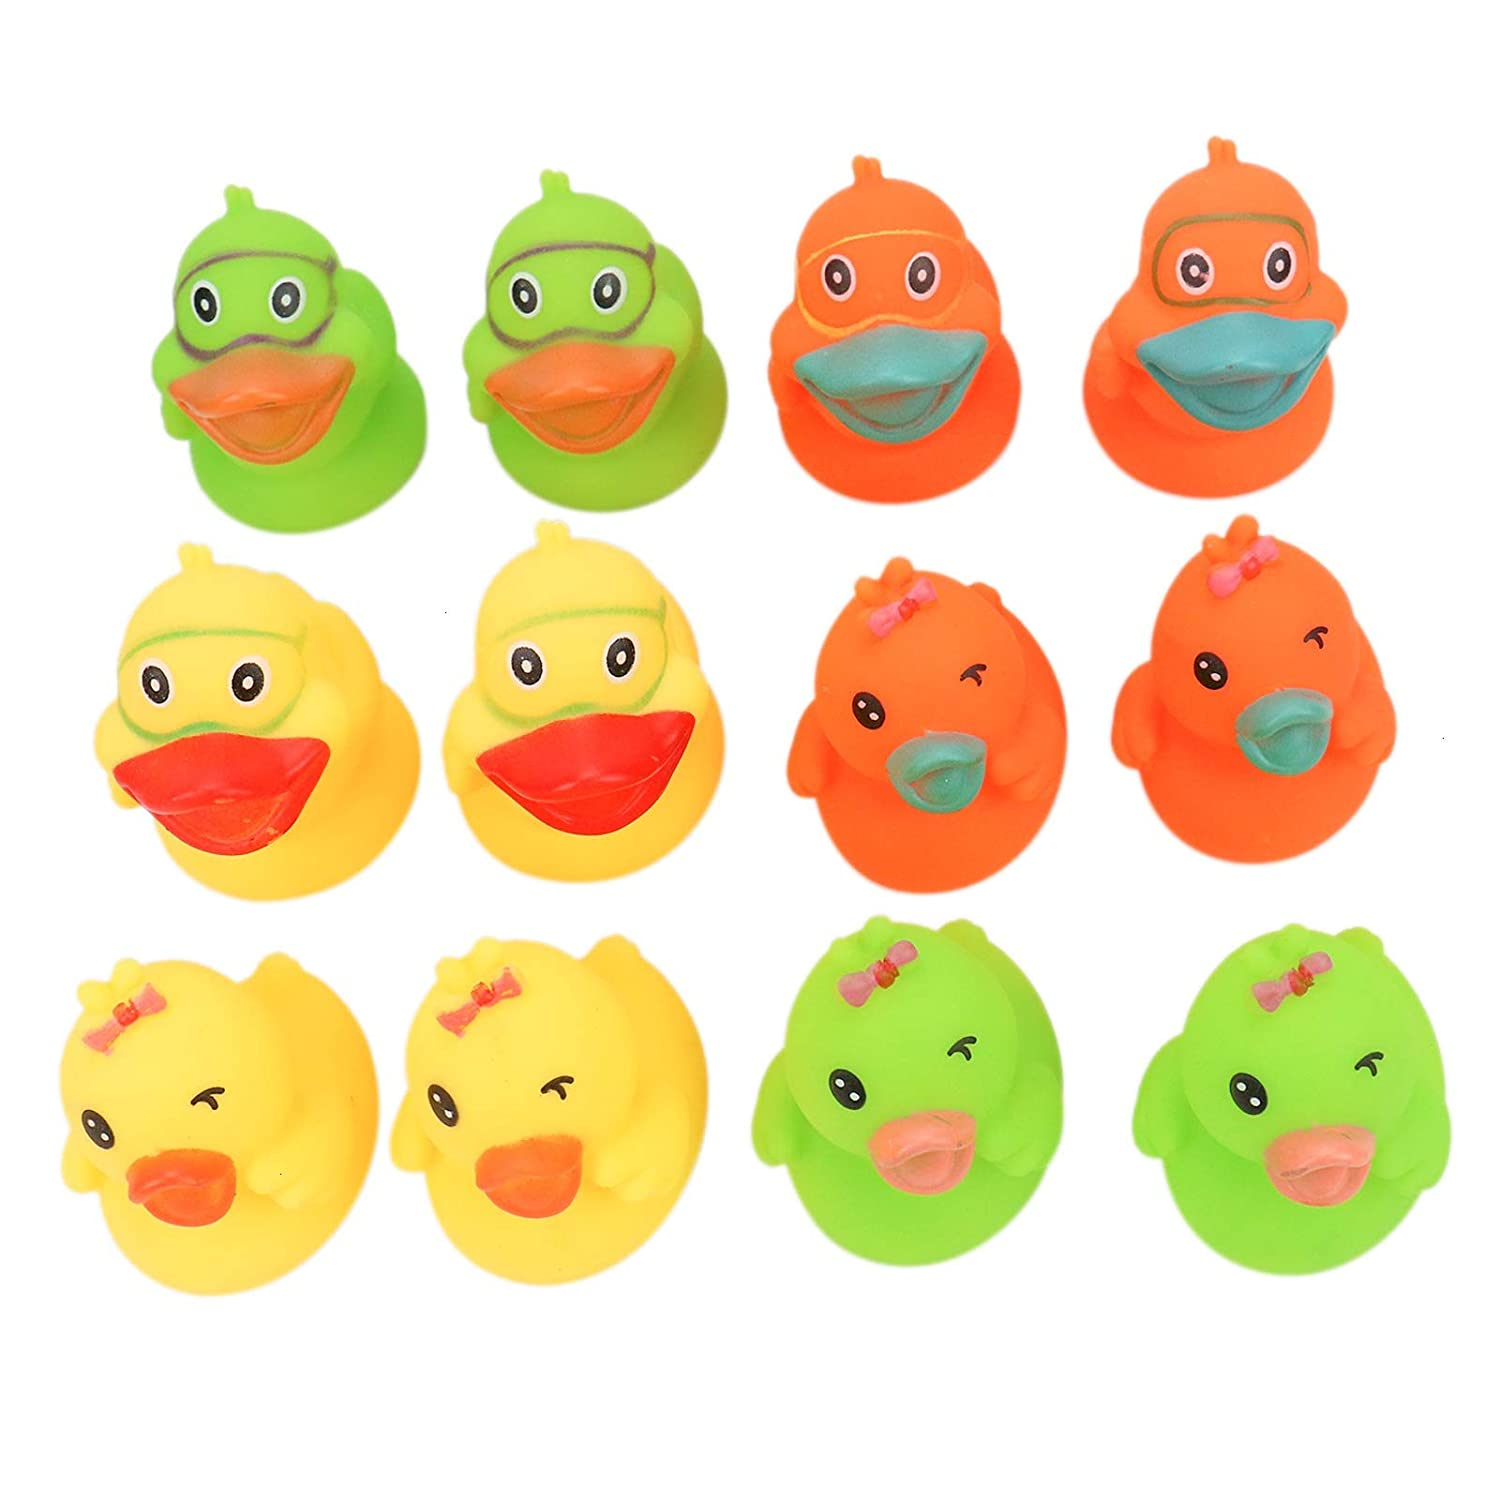 WSSROGY 12 Pack Novelty Cute Float /& Squeak Duck Colored Soft Rubber Baby Wash Shower Bath Toys for Kids Boys and Girls Toddlers